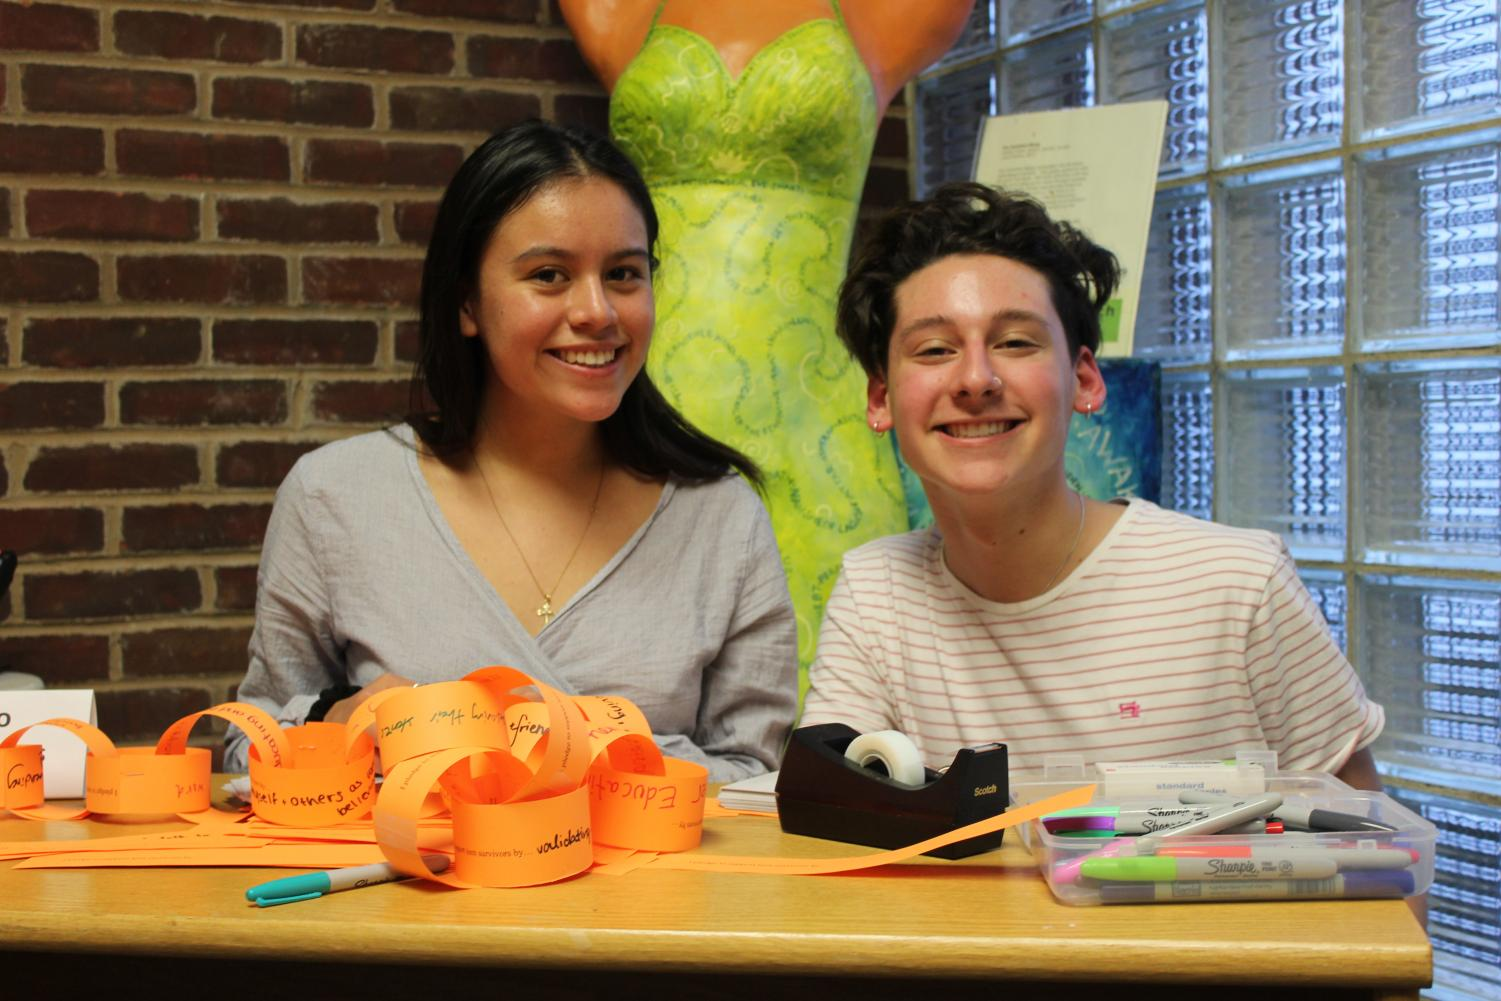 Two Teen Voice peers sit at a welcome table with orange slips of paper prompting guests to think about ways to help survivors.